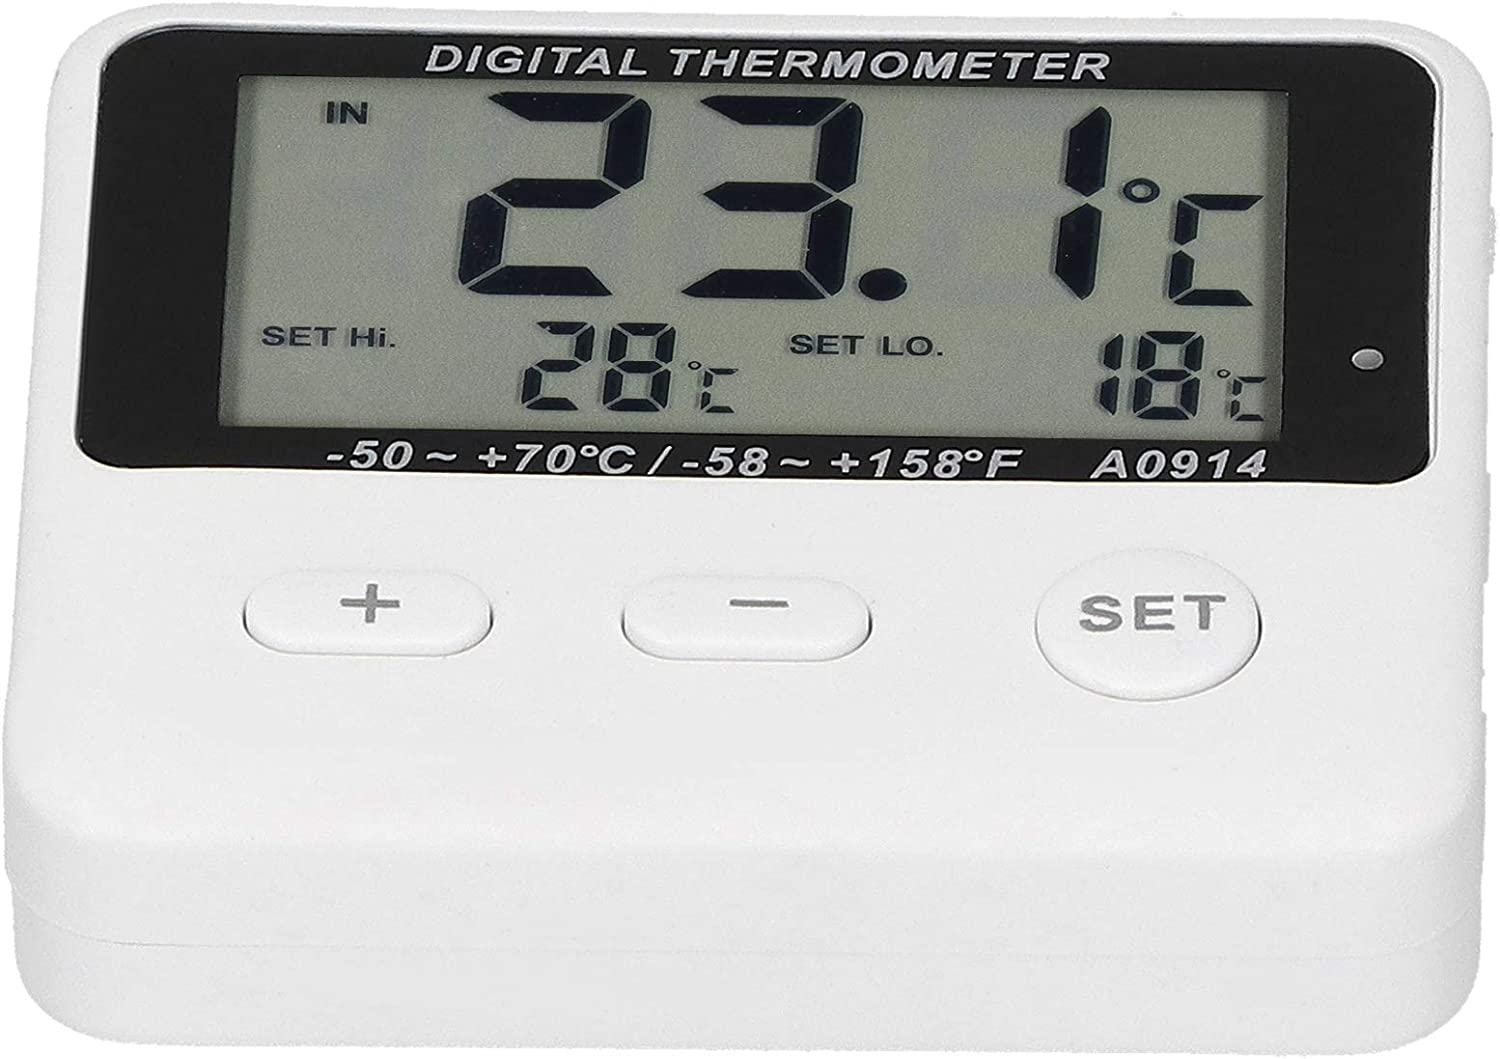 Indoor Refrigerator Alarm Thermometer ! Super beauty product restock quality top! -50℃-70℃ A Very popular with